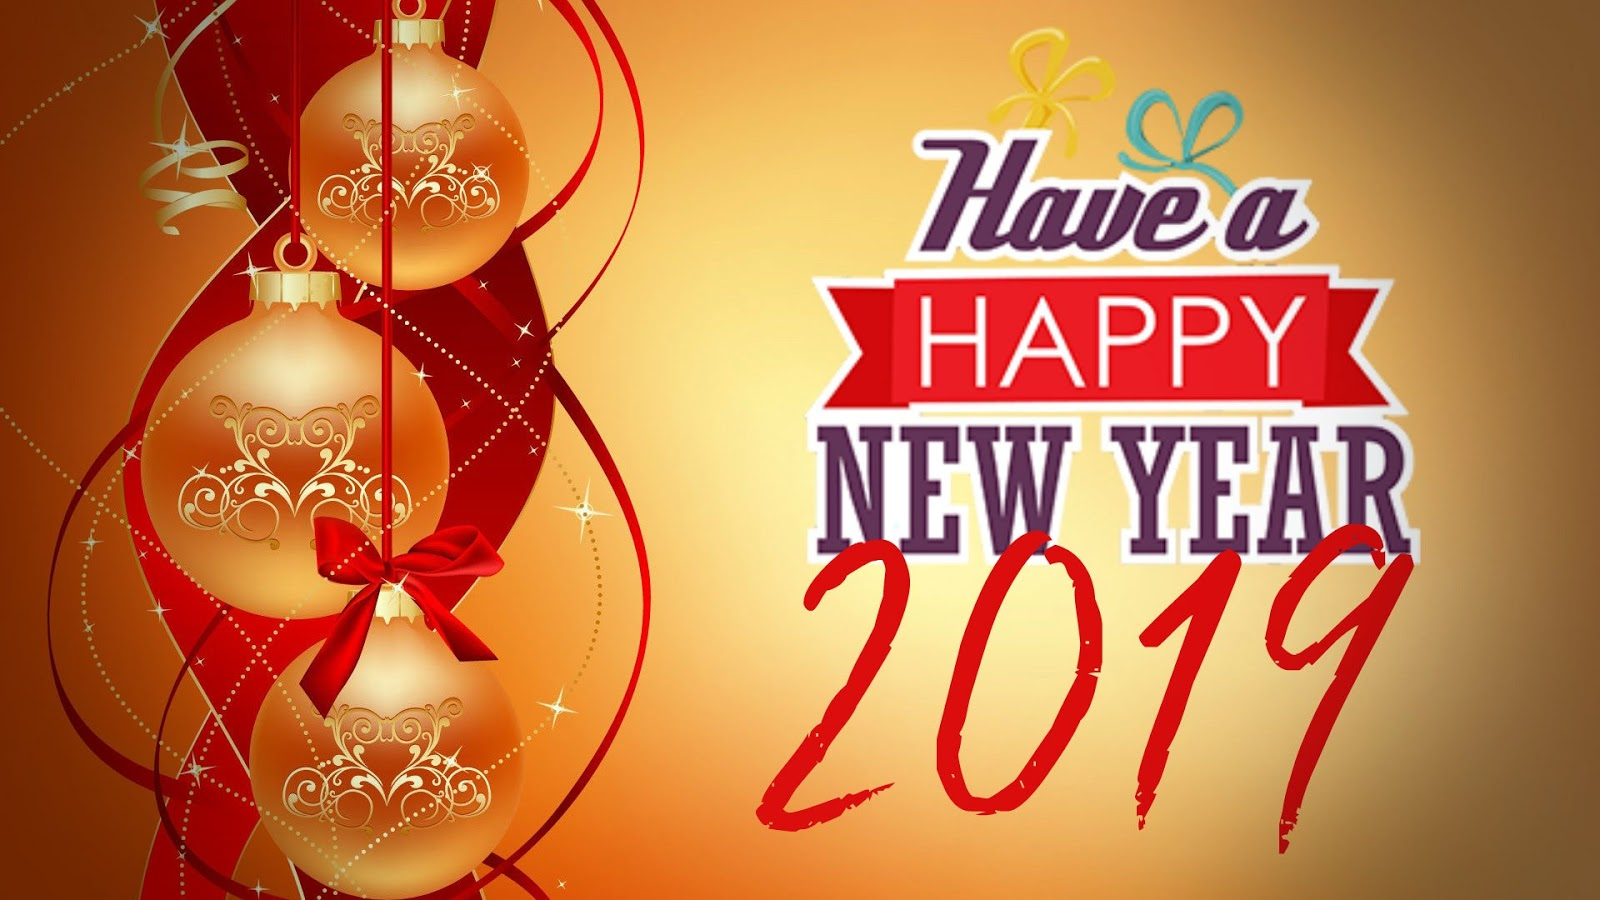 Happy New Year 2019 Images Download Gif Shayari Sms Status